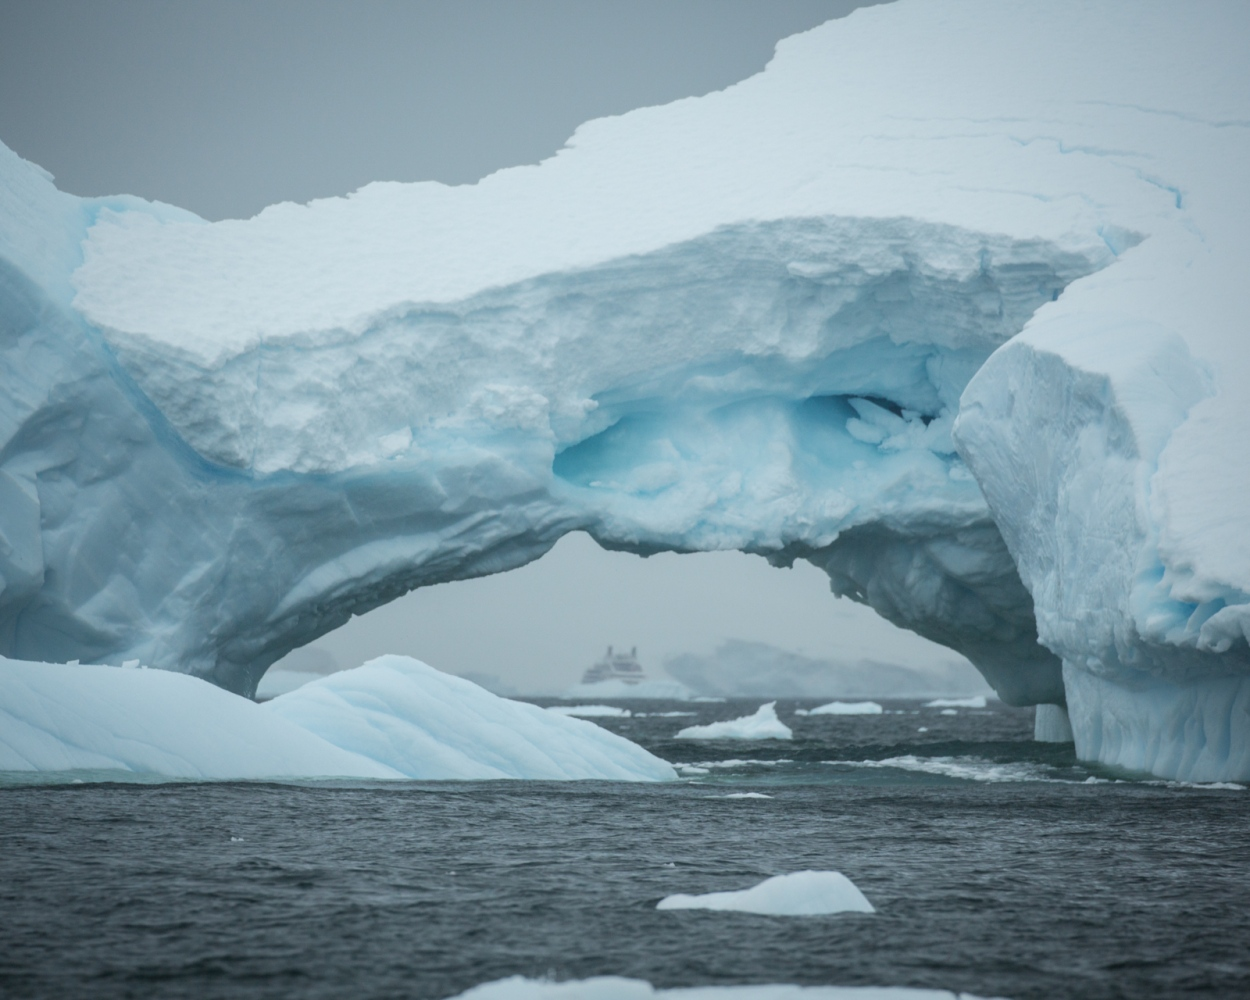 A distant cruise ship looms through an iceberg at the Yalour Islands, Antarctica. Under a highly regulated scheduling system, Antarctic cruise vessels generally go to great lengths to stay out of sight of one another.   While the wilderness experience may appear pristine to passengers, during the high season there can be over 20 ships operating simultaneously around the Antarctic peninsula.